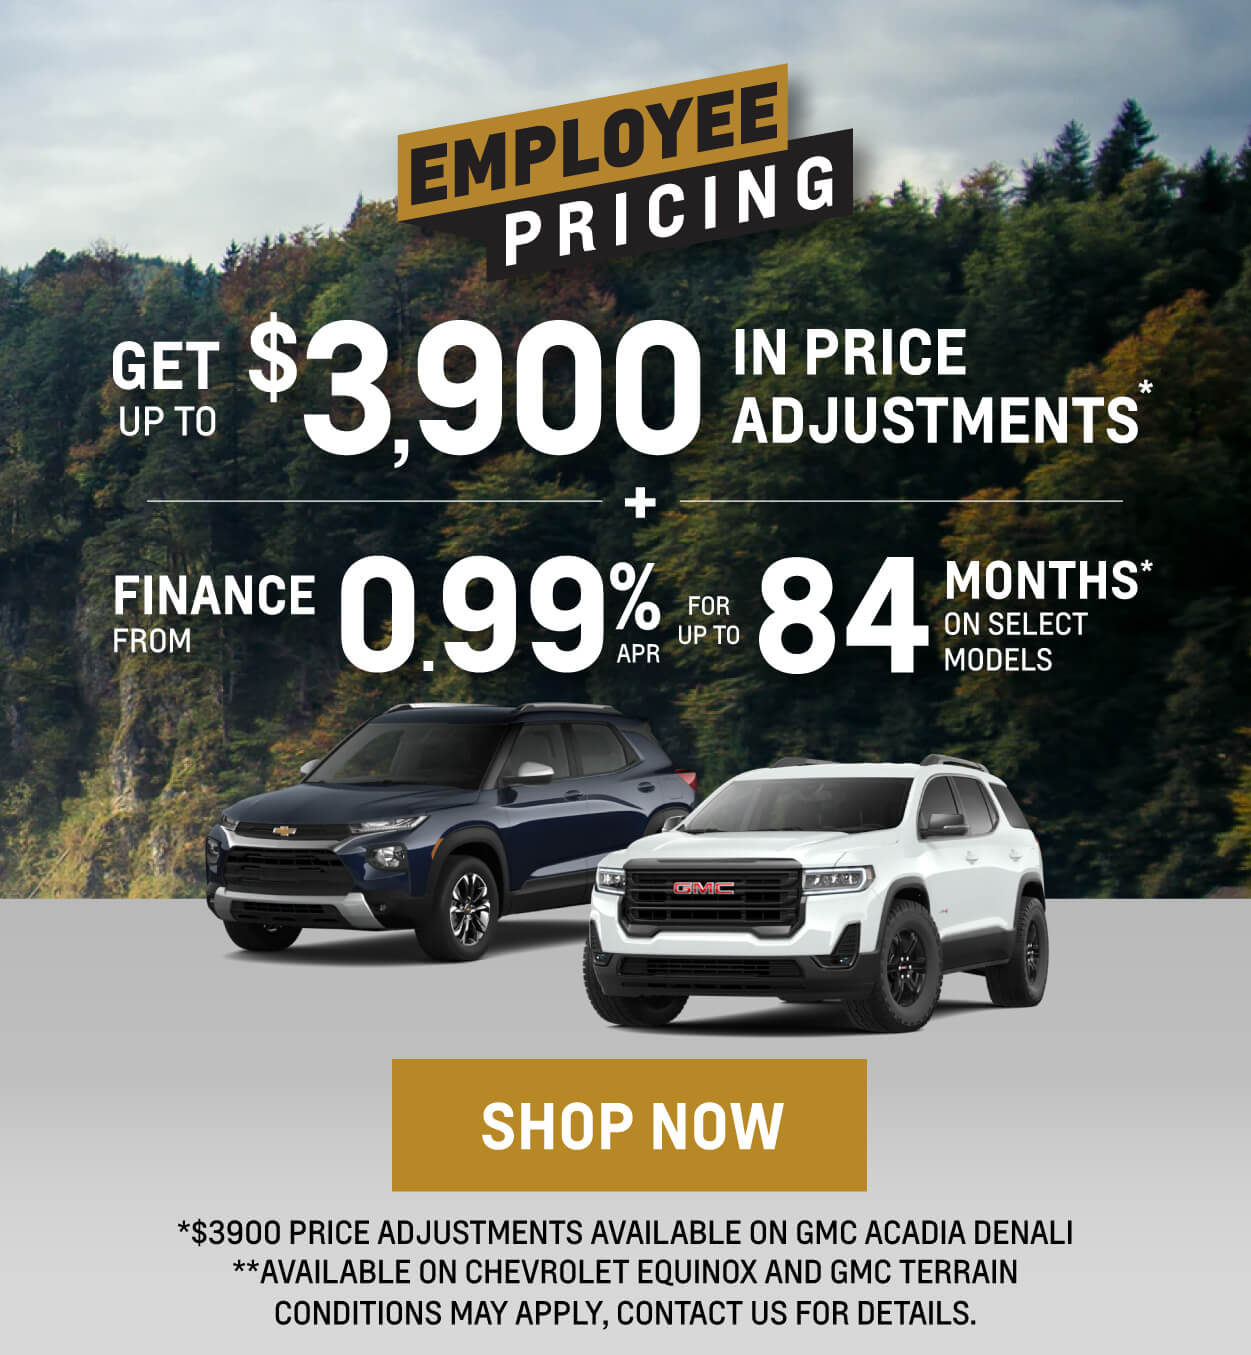 Chevrolet, GMC, Buick SUV Offers in Etobicoke